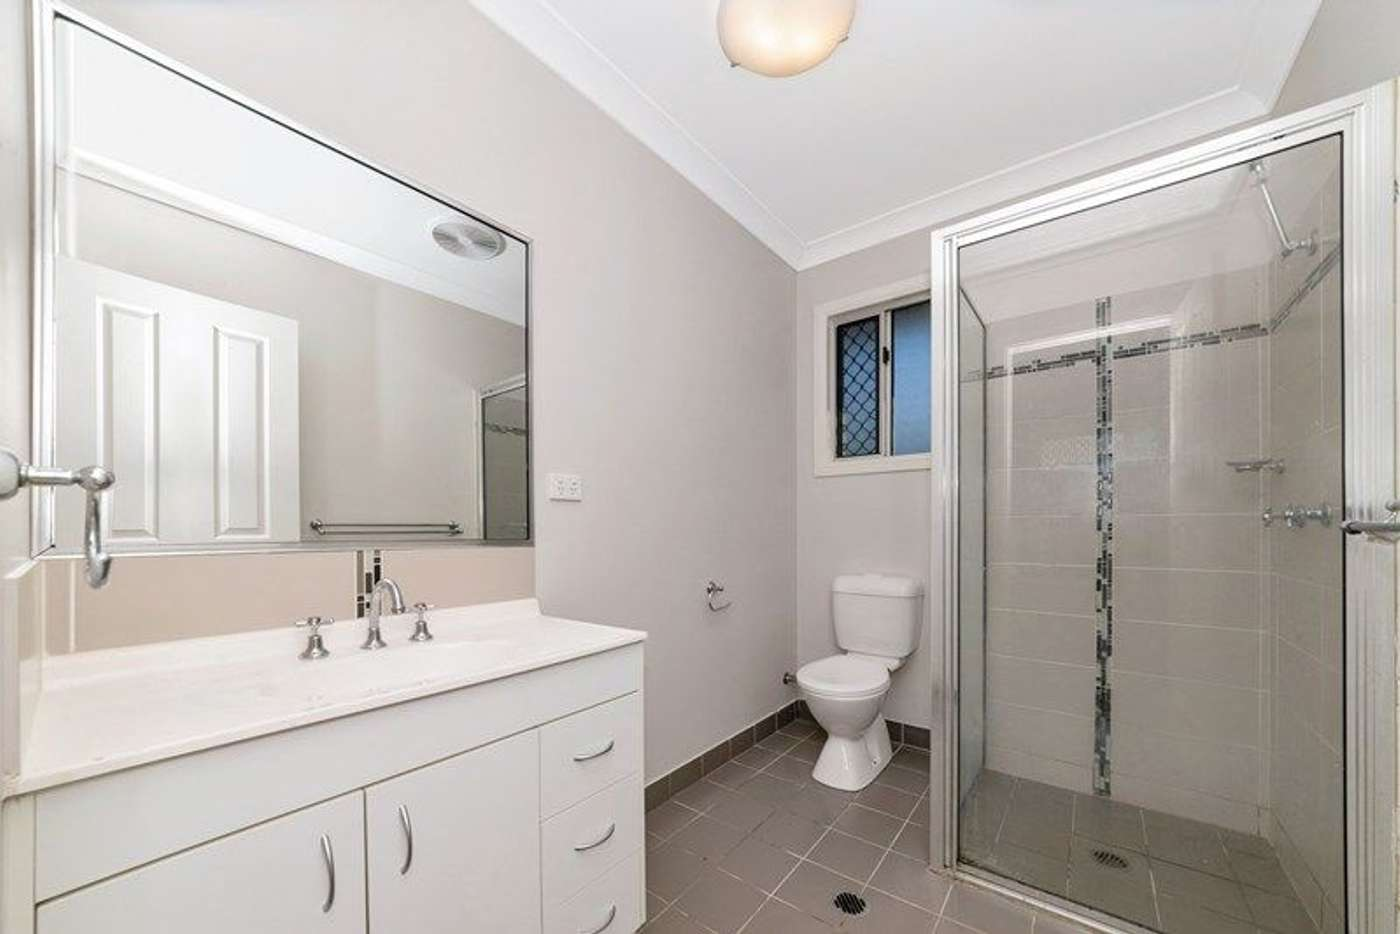 Sixth view of Homely house listing, 74 Summerland Drive, Deeragun QLD 4818